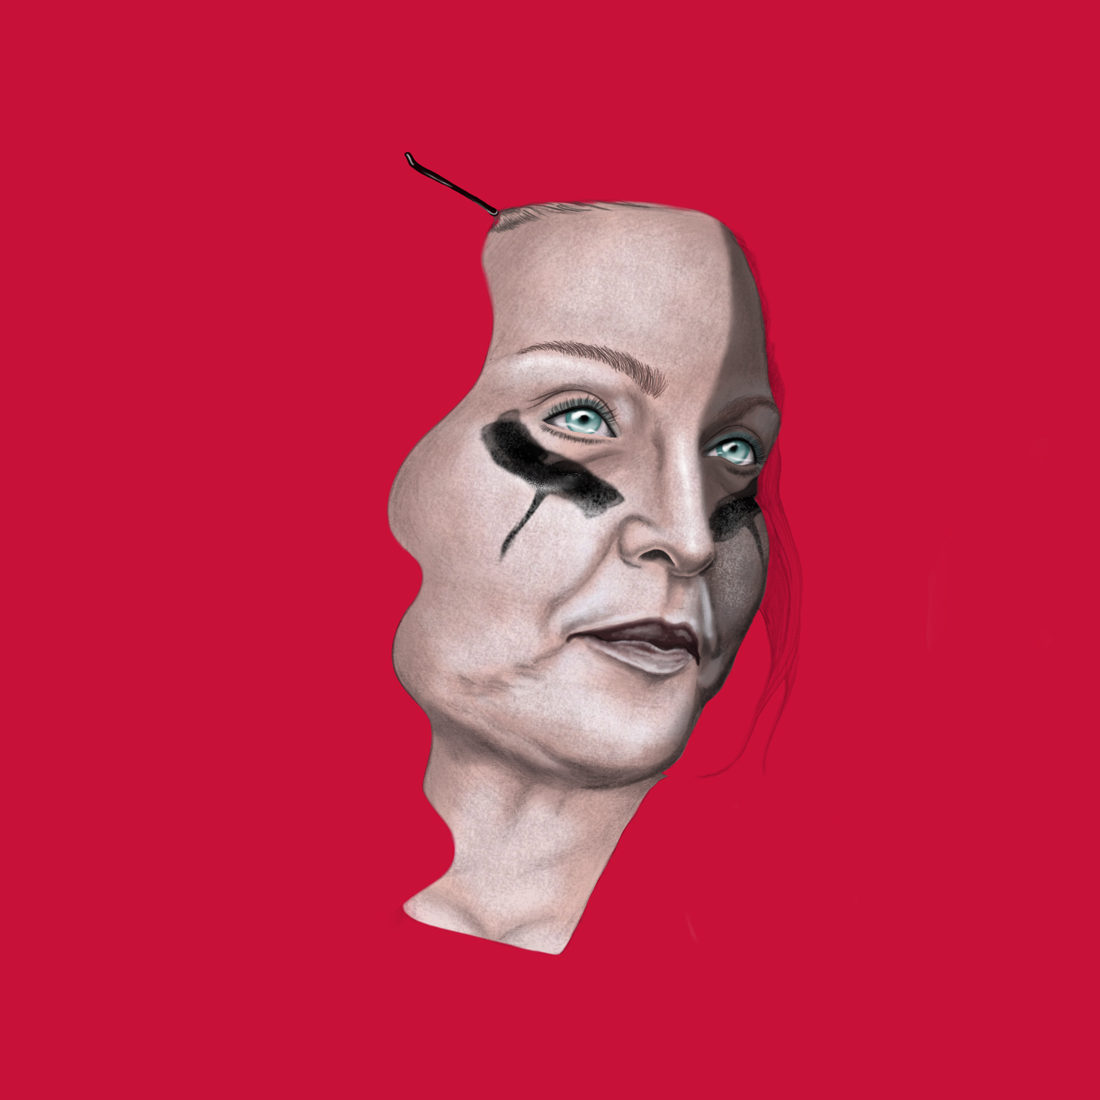 illustration, illustrations, illustrator, illustrators, woman, women, makeup, red background, eye makeup, drip, dripping